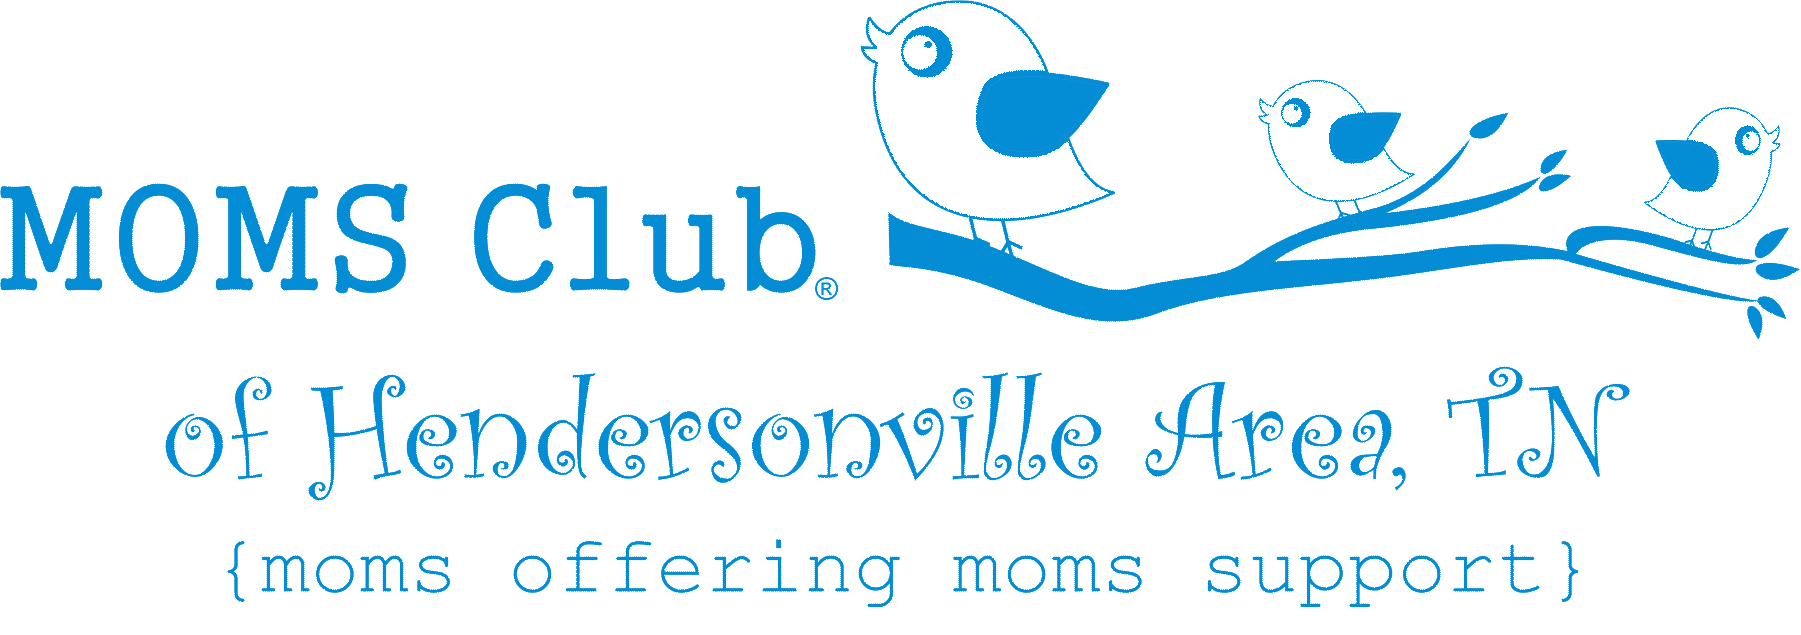 MOMS Club of Hendersonville